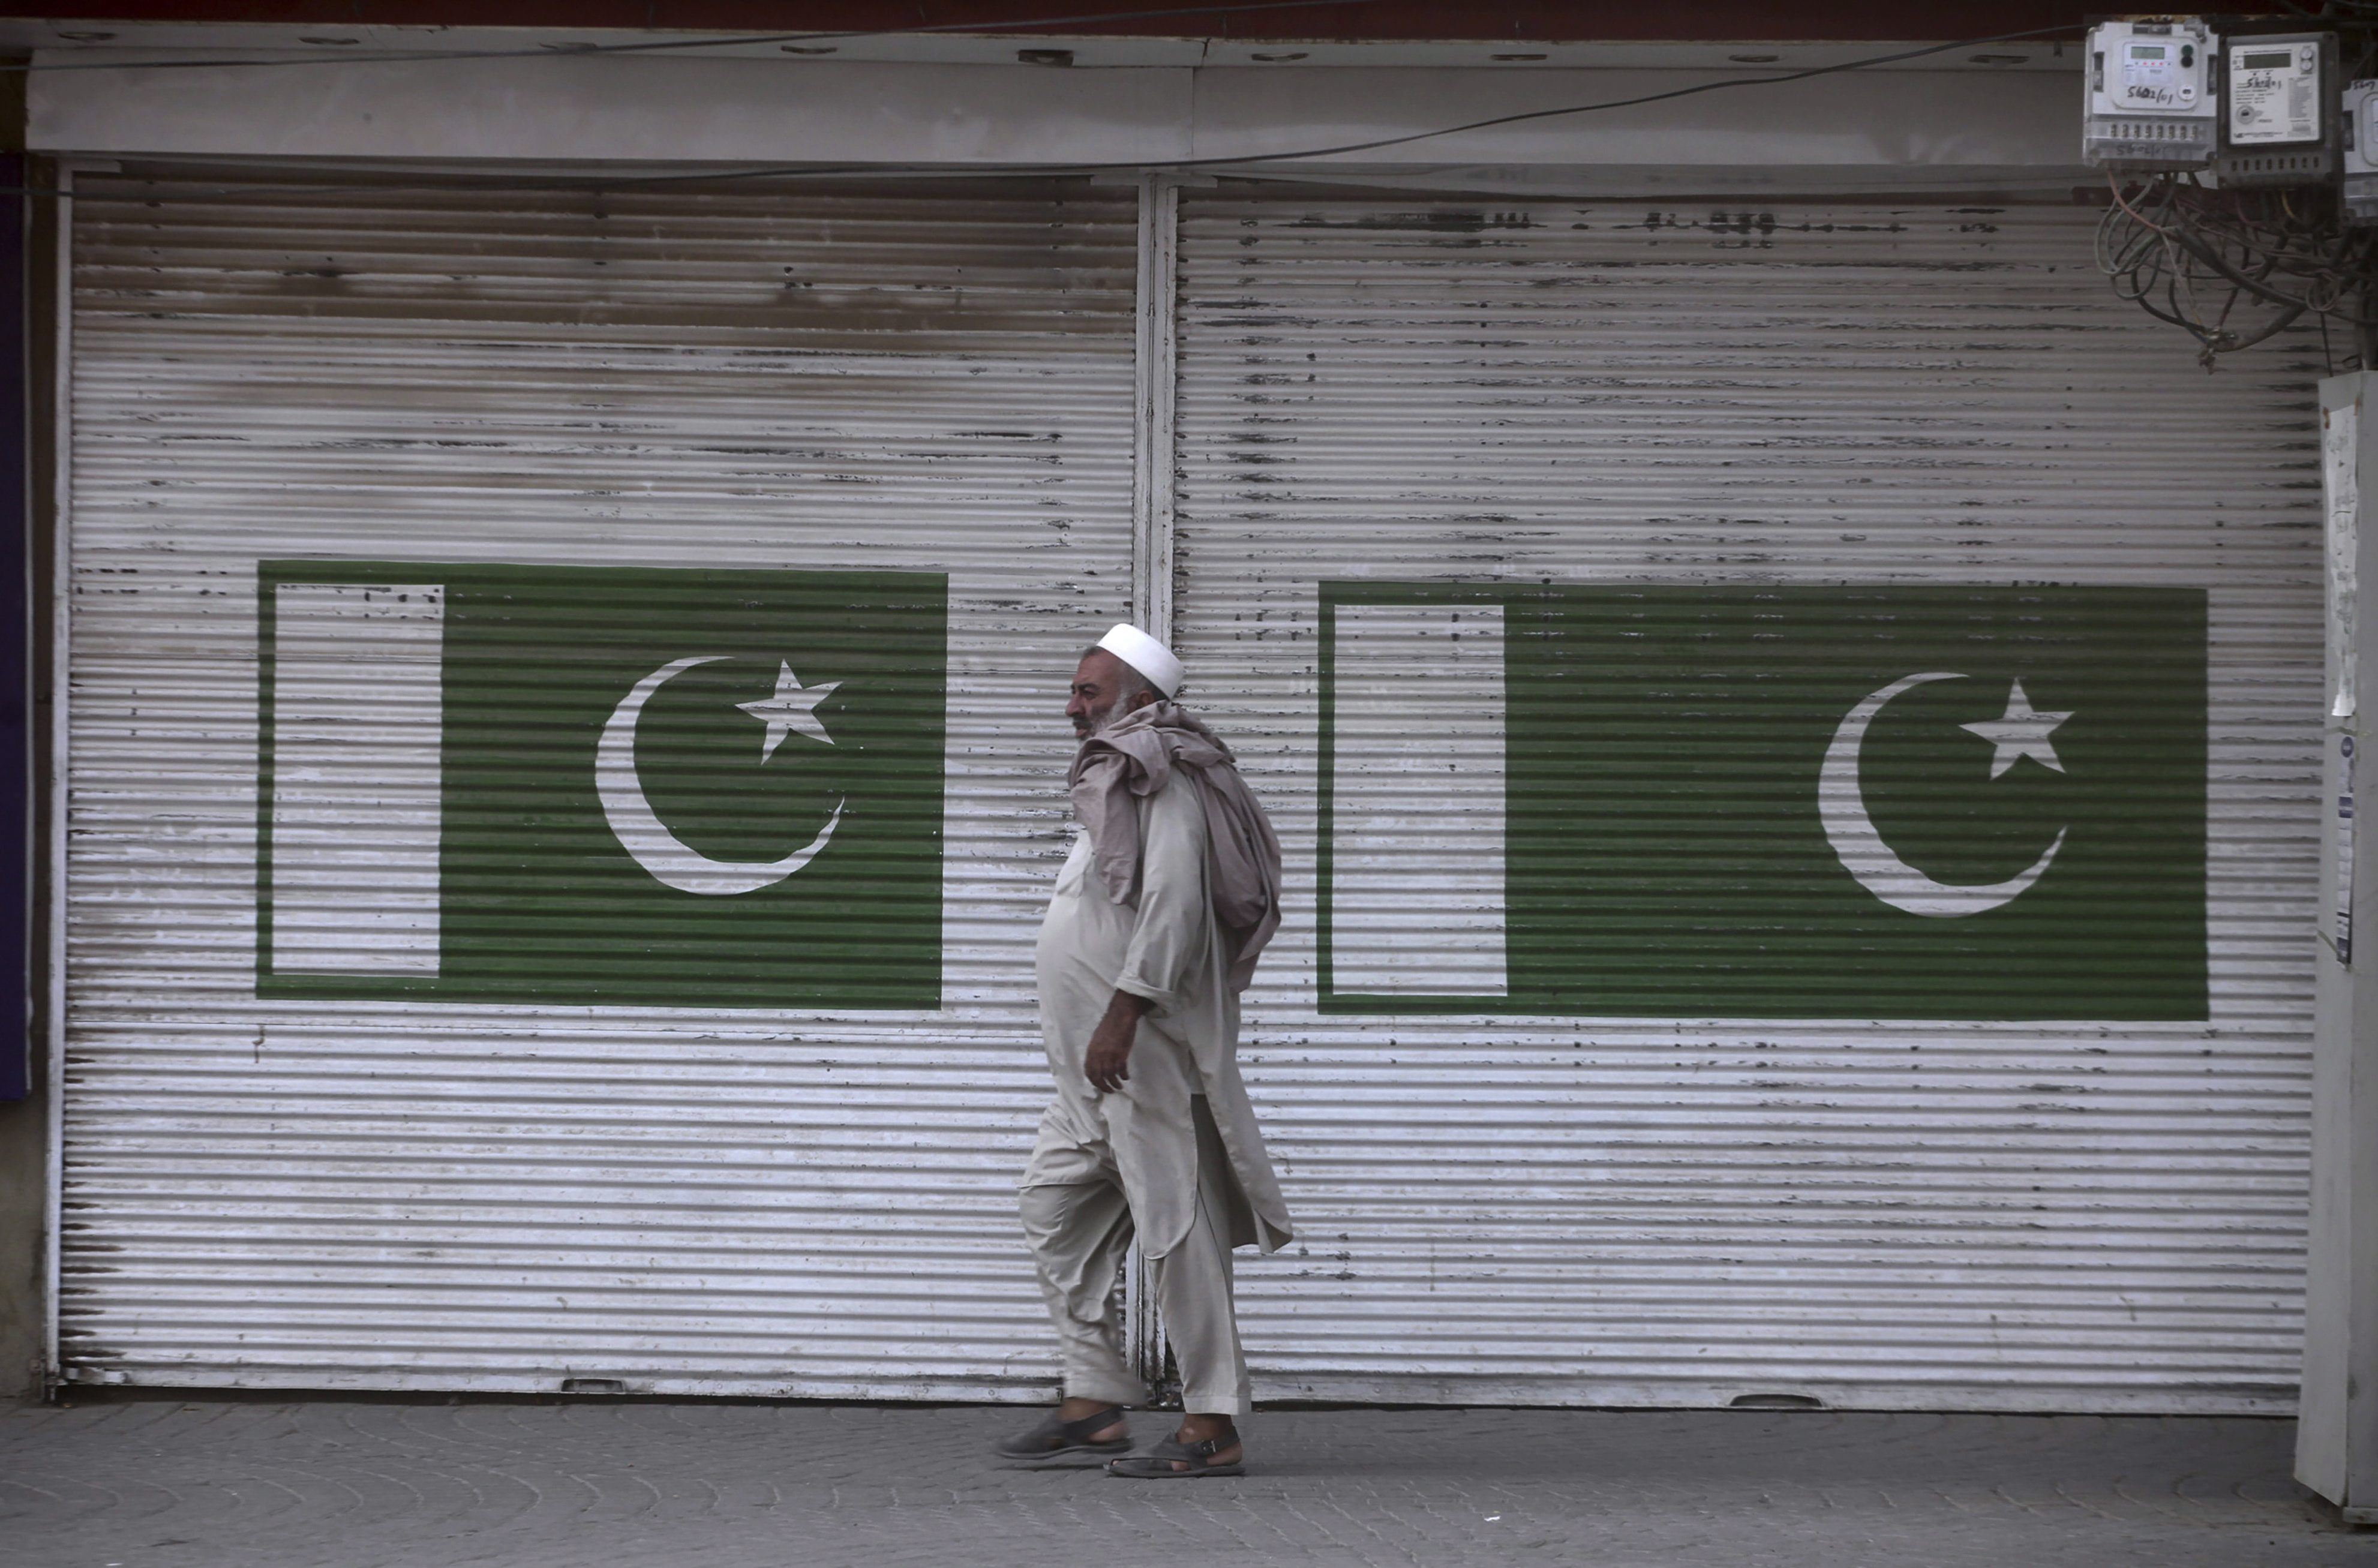 World Bank Ruling Against Pakistan Shows Global Economic Governance Is Broken